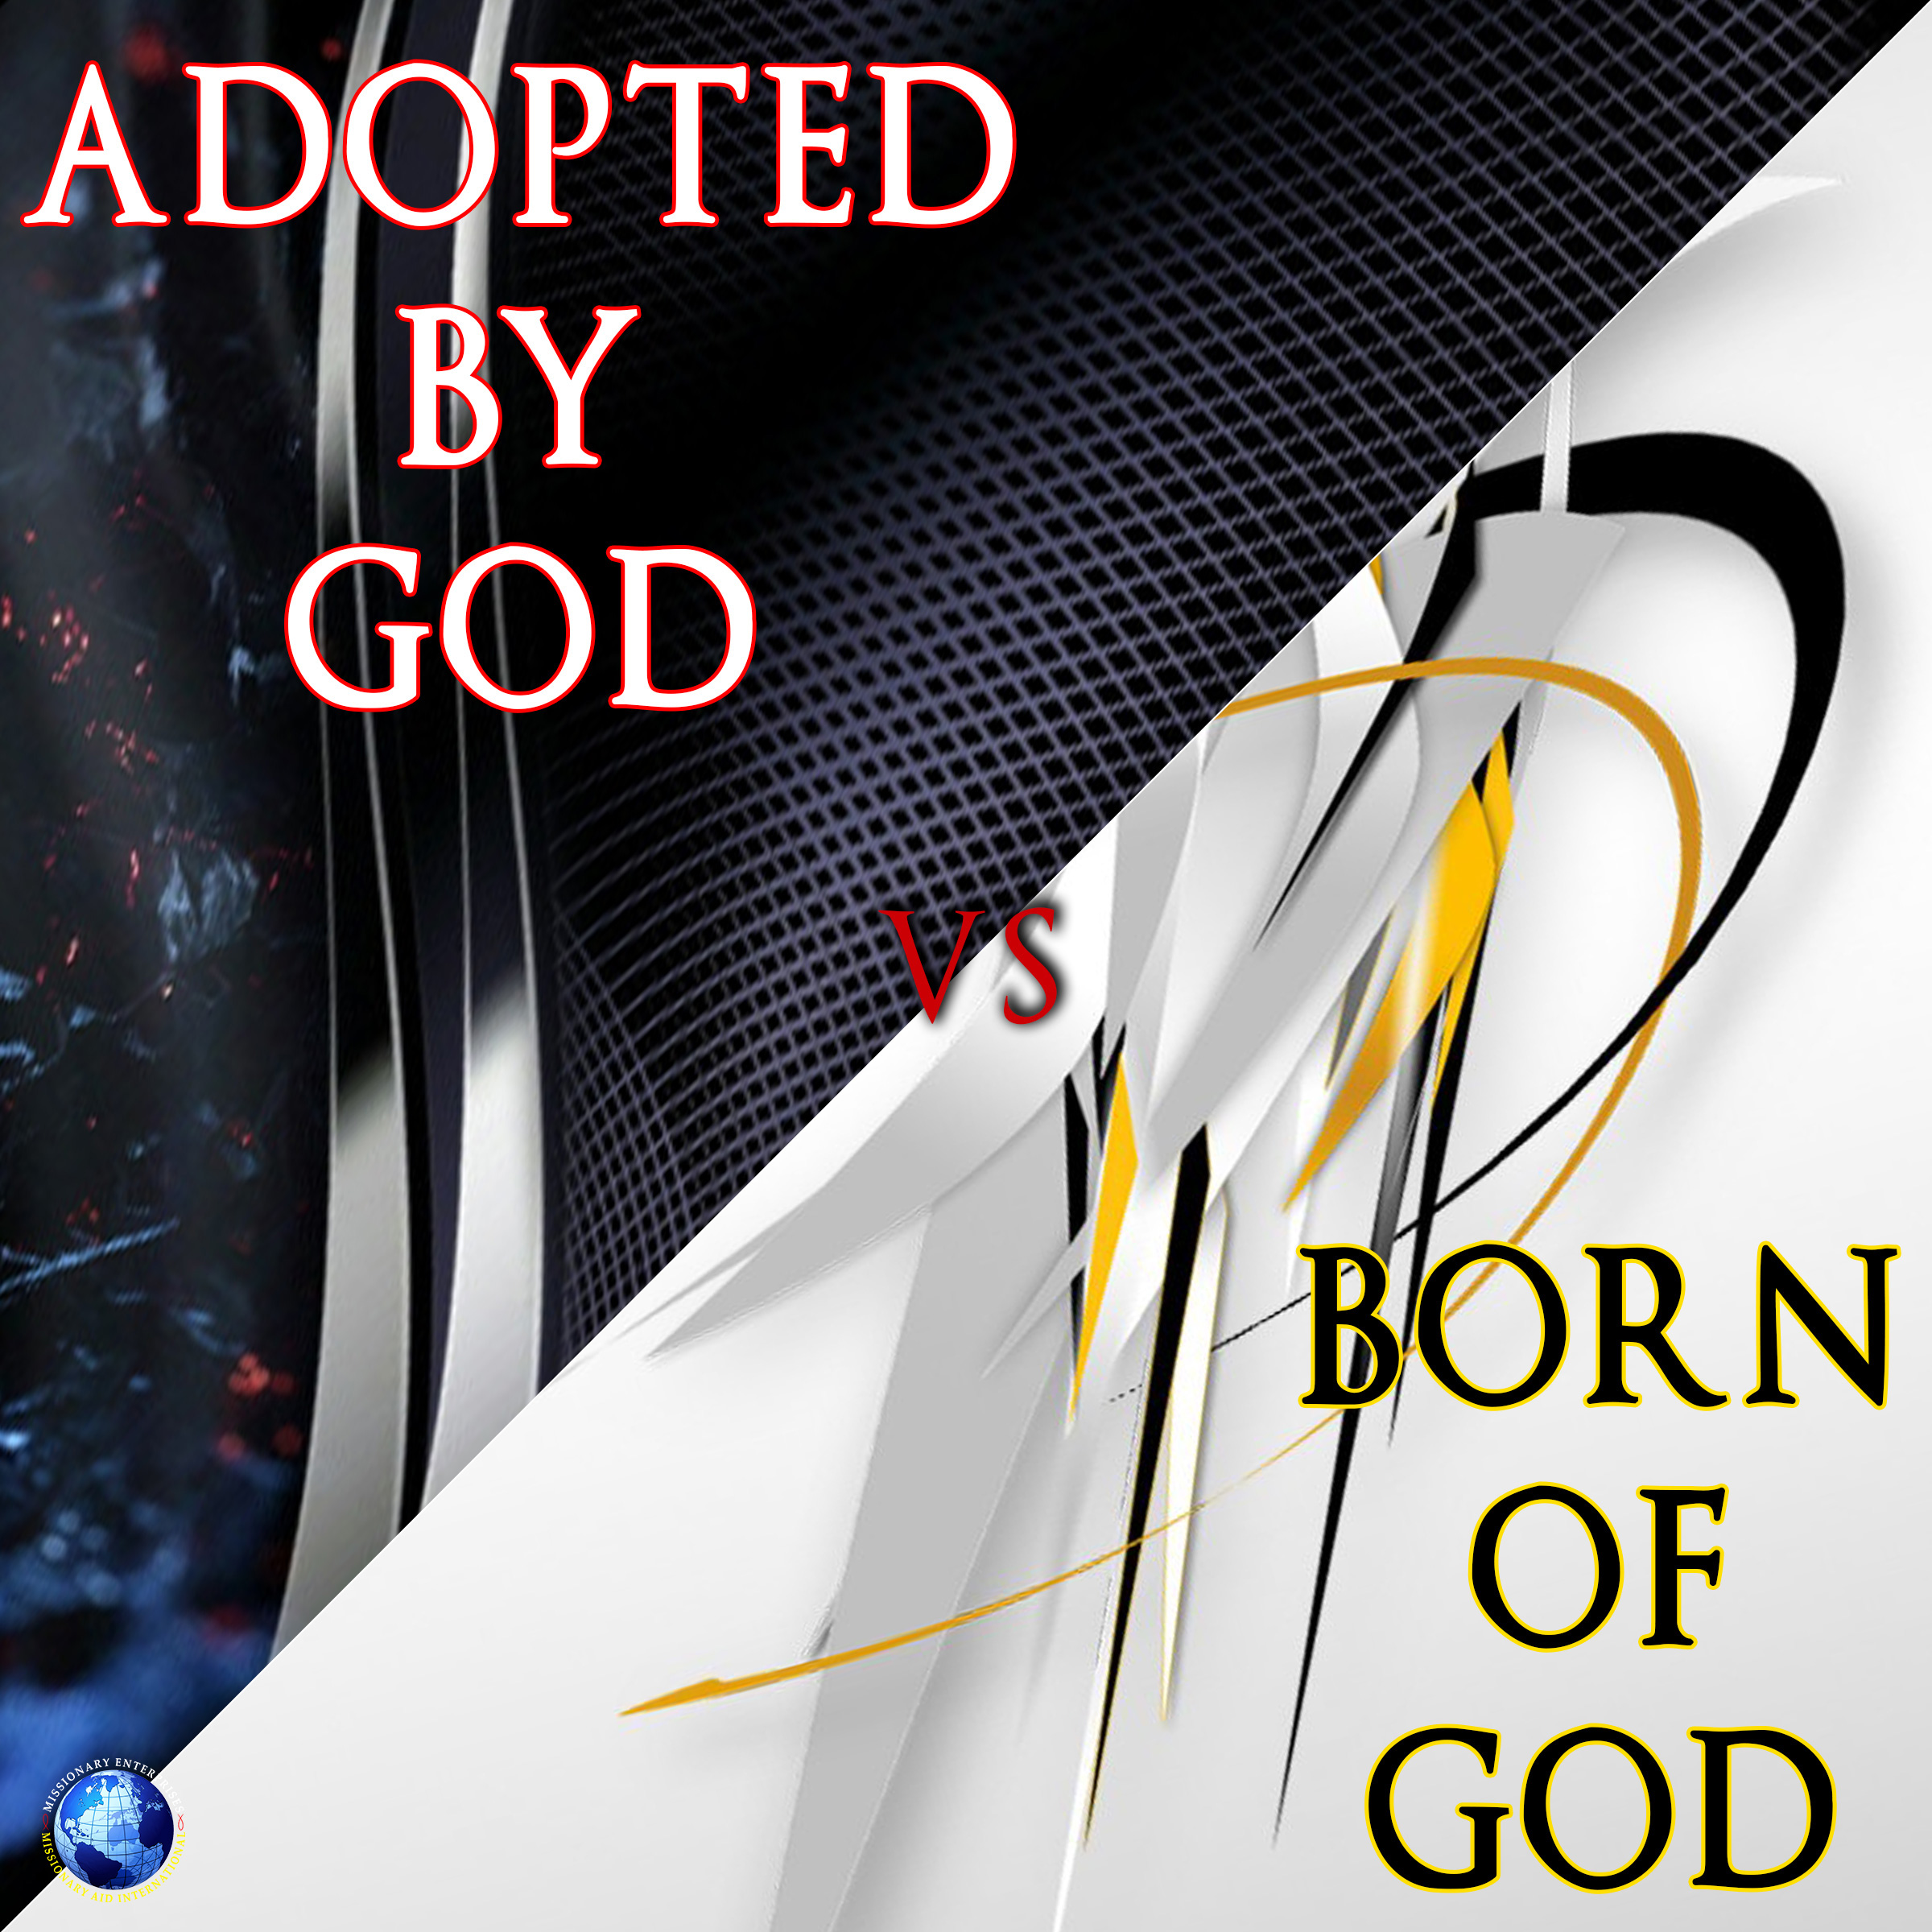 Adopted by God vs Born of God